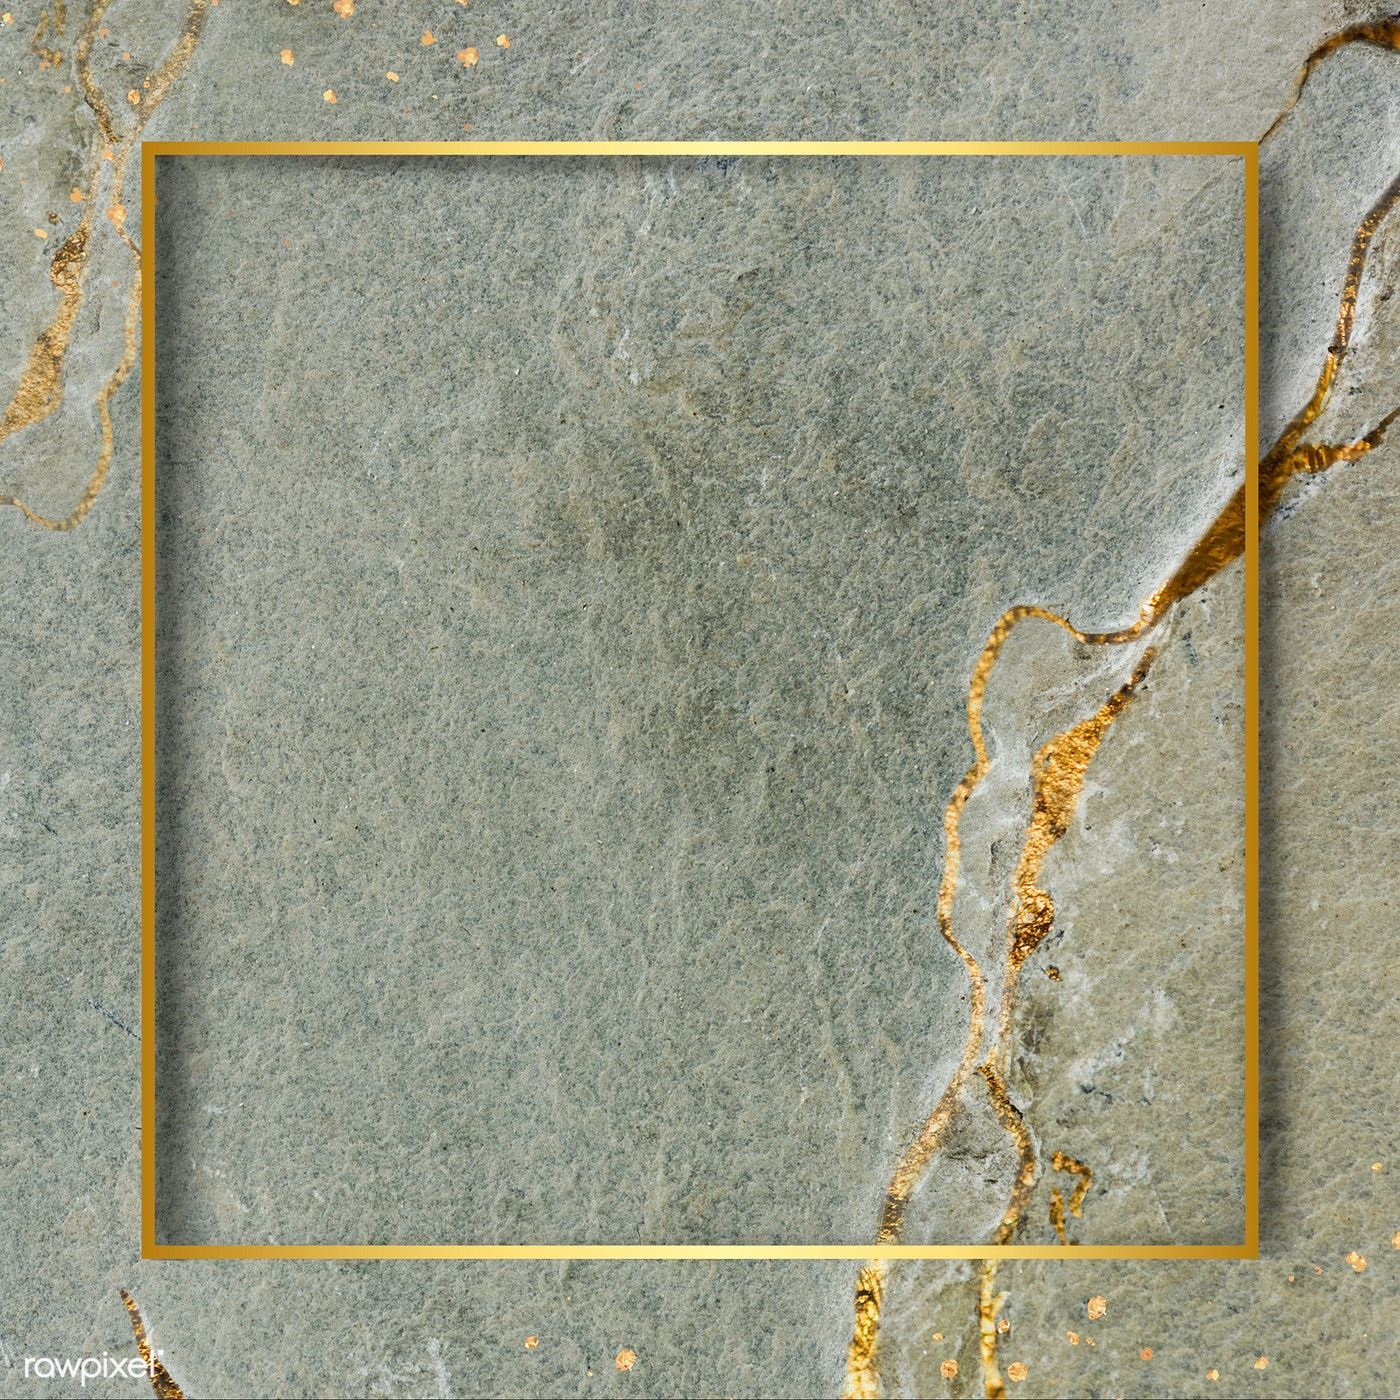 Download premium image of Golden square frame on a marble textured #marbletexture